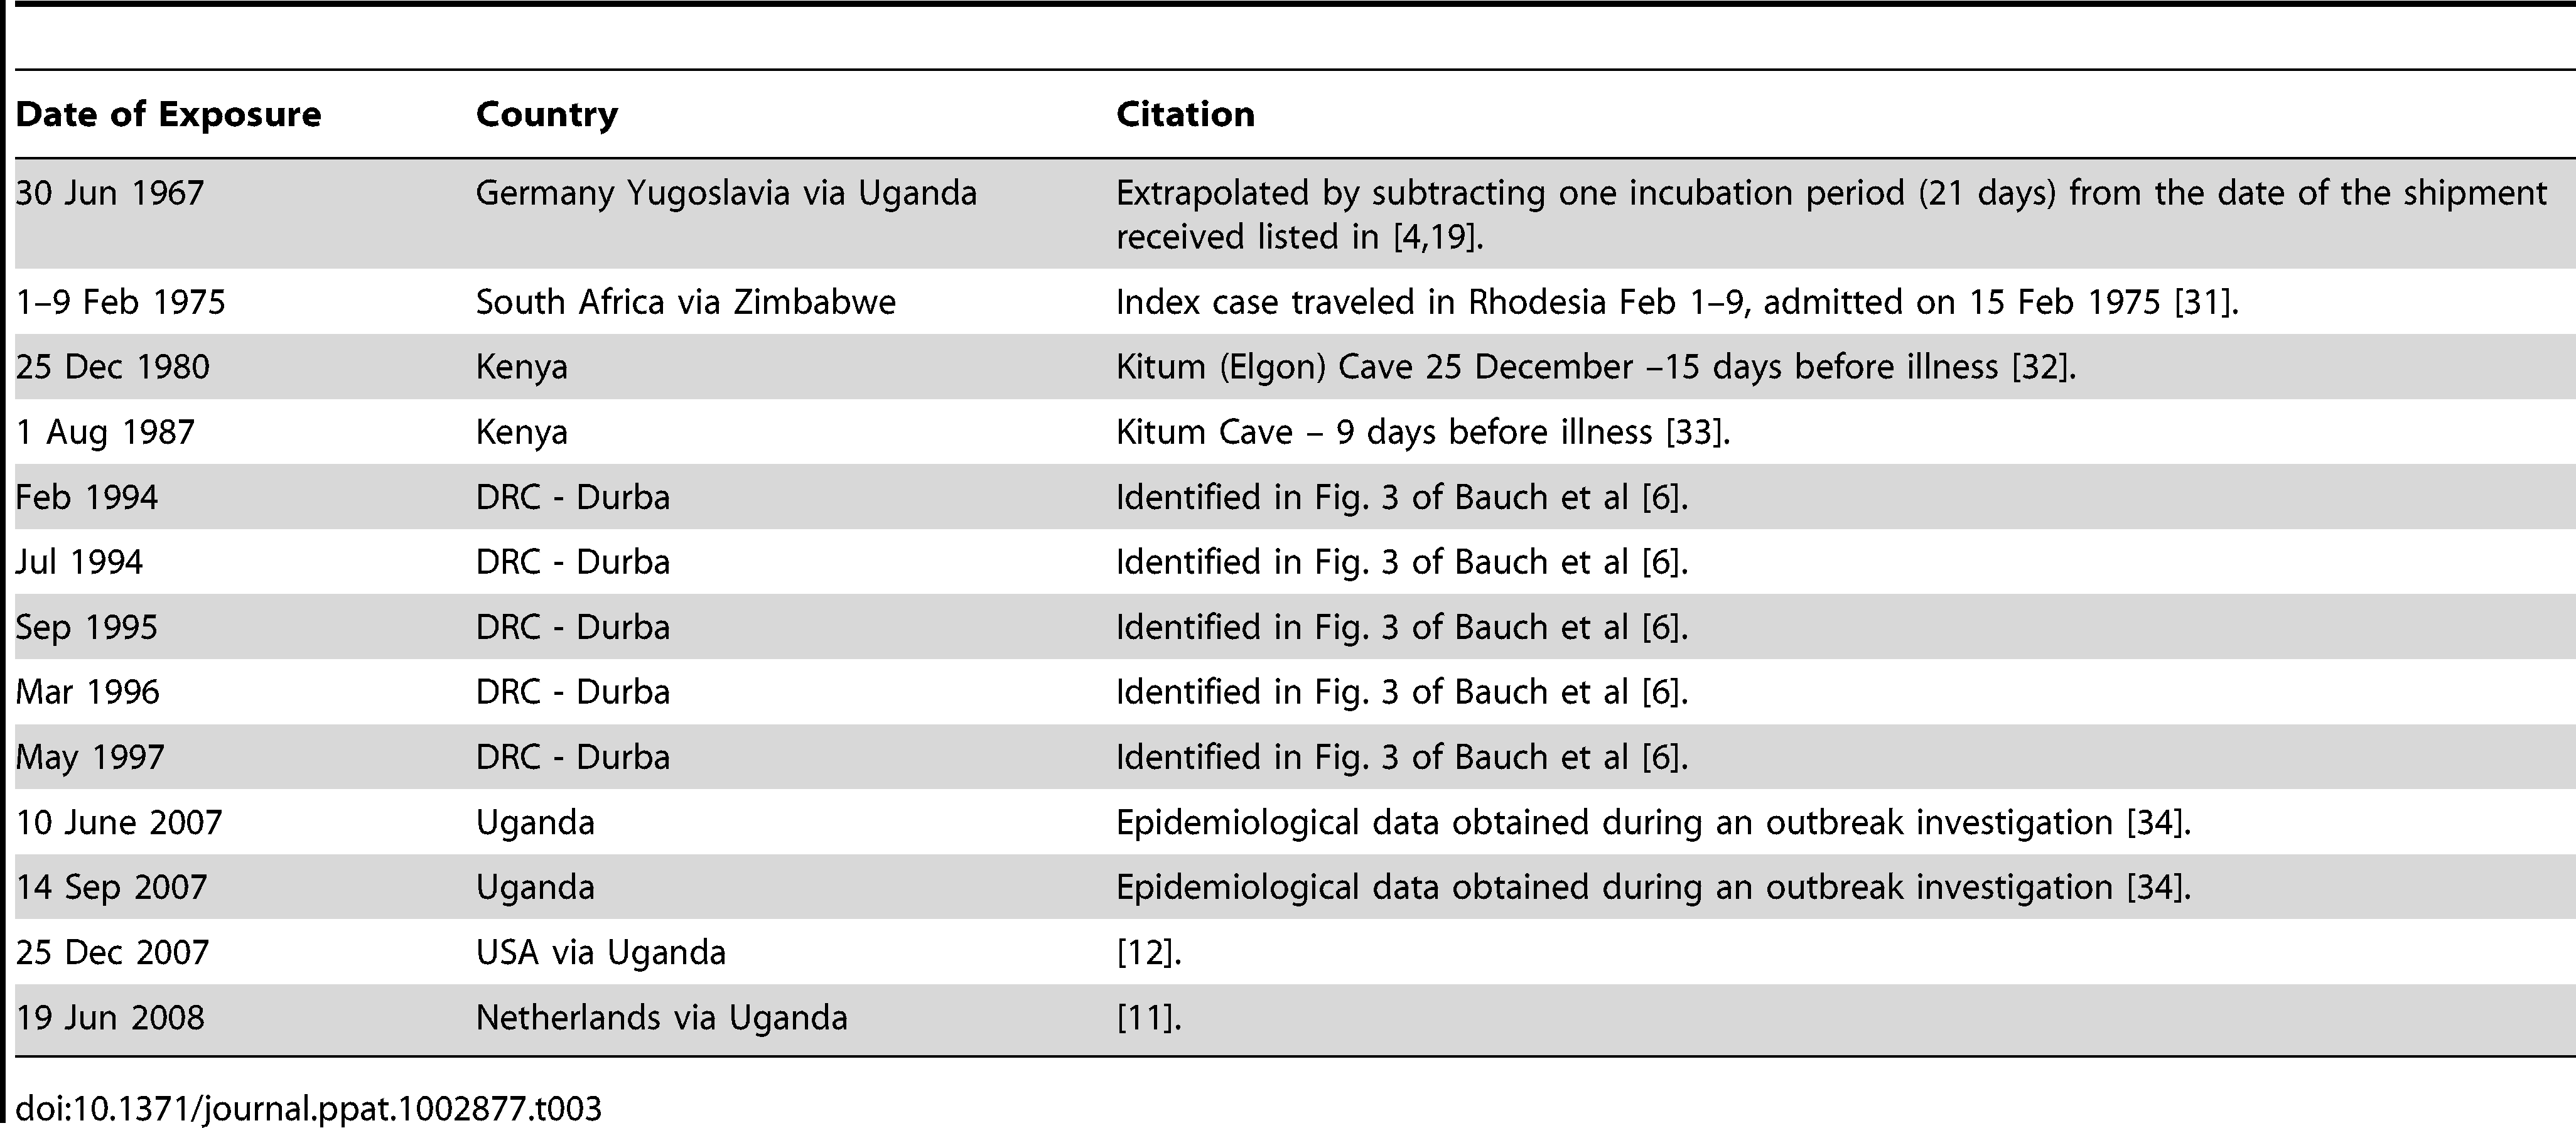 Historical Marburg spillover events with dates of initial exposure excluding the 2005 Angola outbreak because the initial exposure date was never identified.